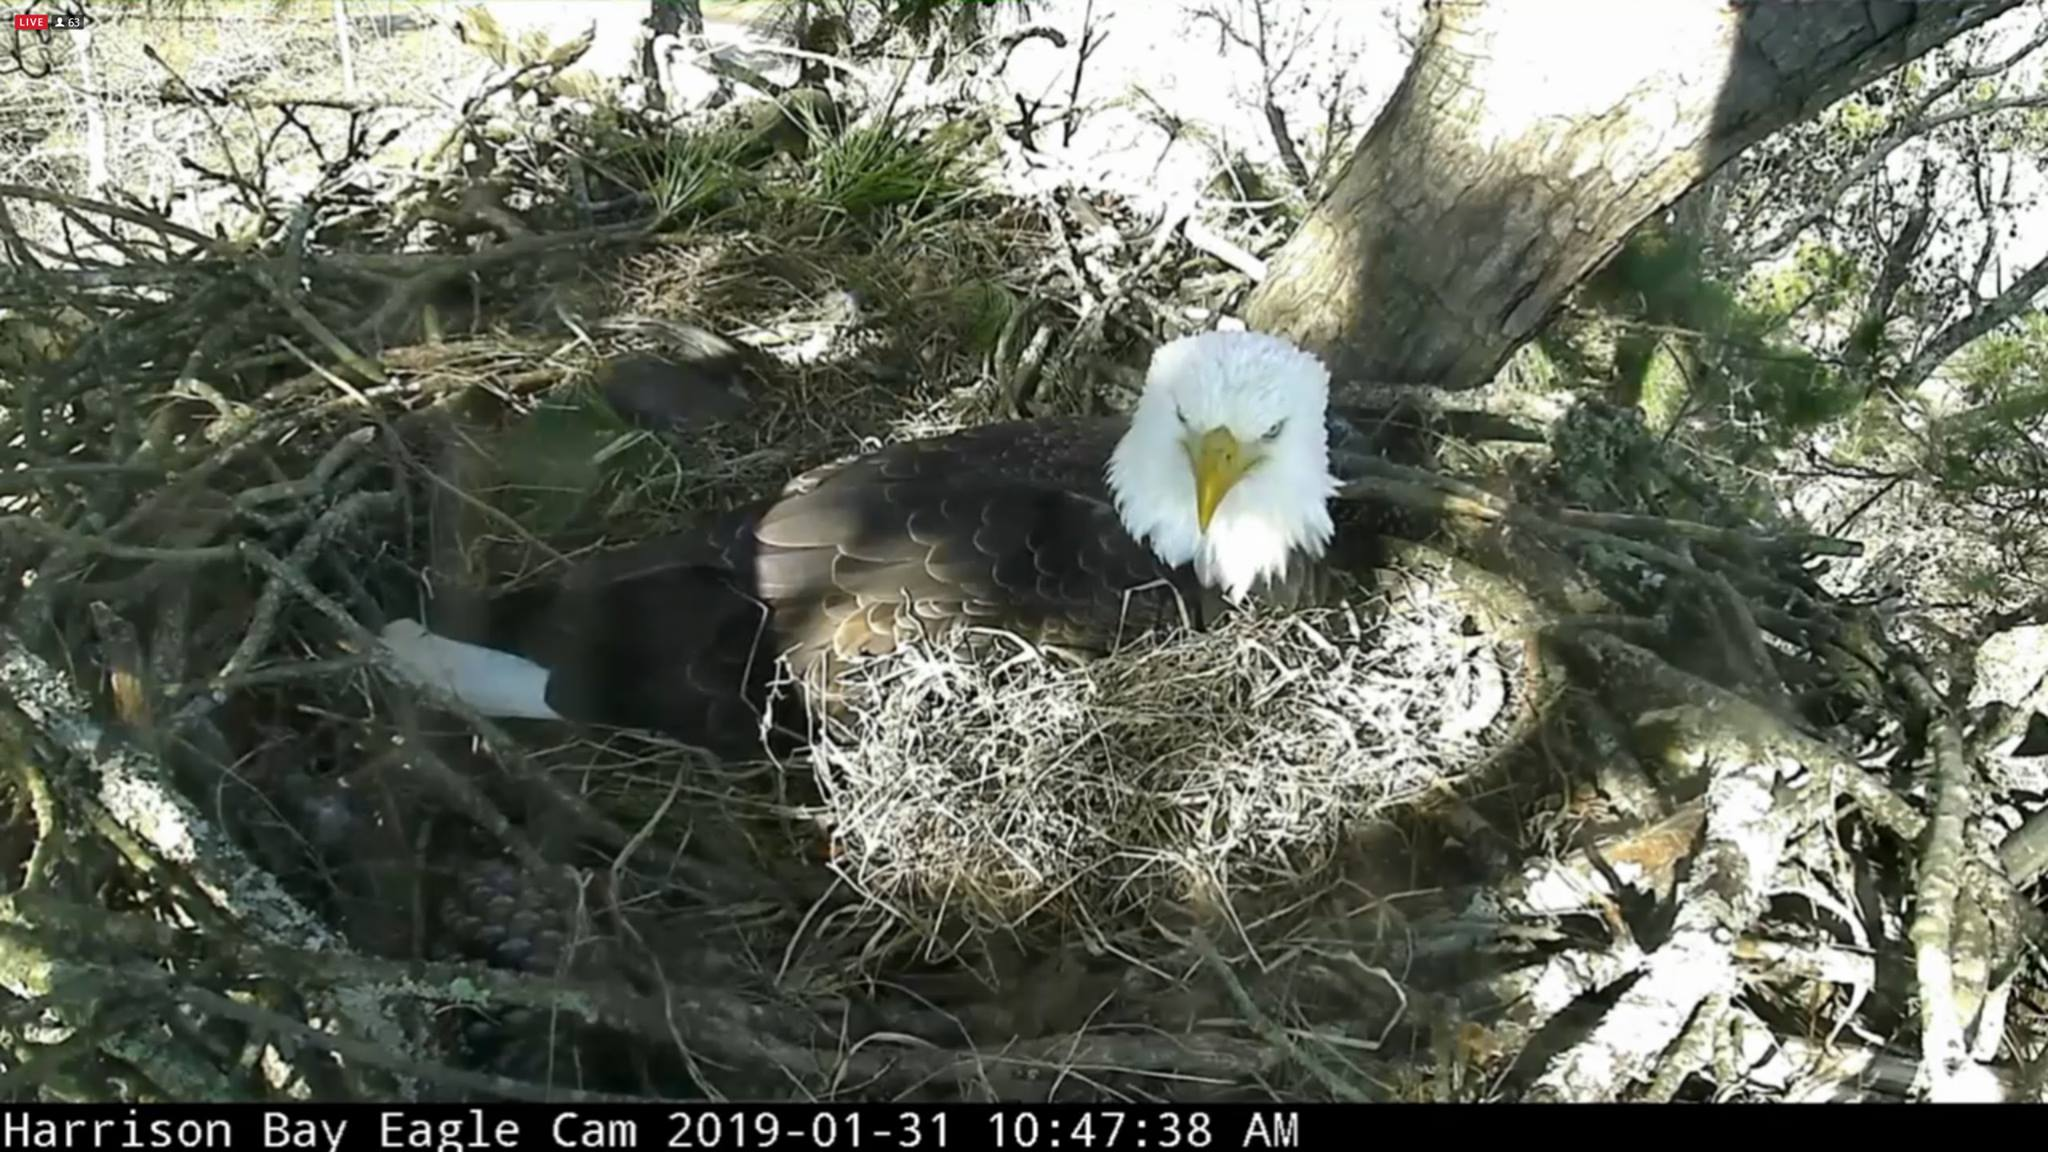 The male bald eagle watchers call Elliot takes his turn Wednesday morning incubating three eggs in the nest on the Bear Trace Golf Course at Harrison Bay State Park. (Eagle Cam Screen Grab)